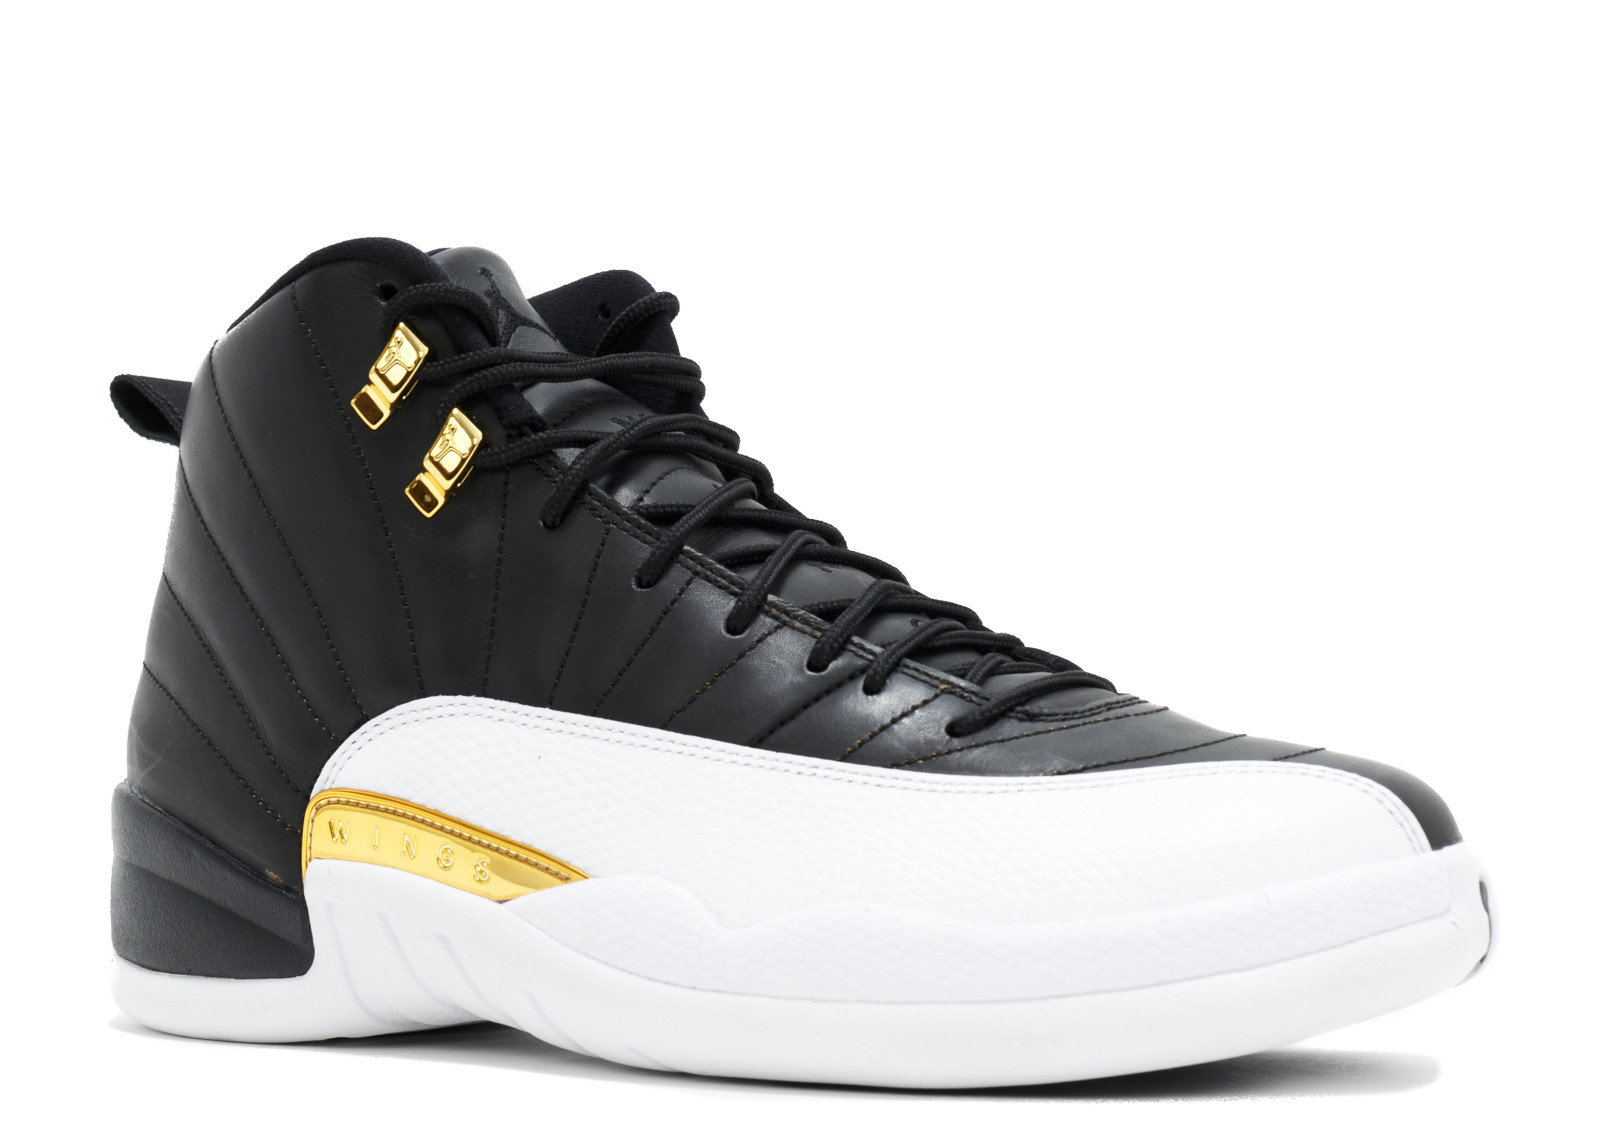 online store 151d0 ff401 Air Jordan - Men - Air Jordan 12 Retro  Wings  - 848692-033 - Size 13